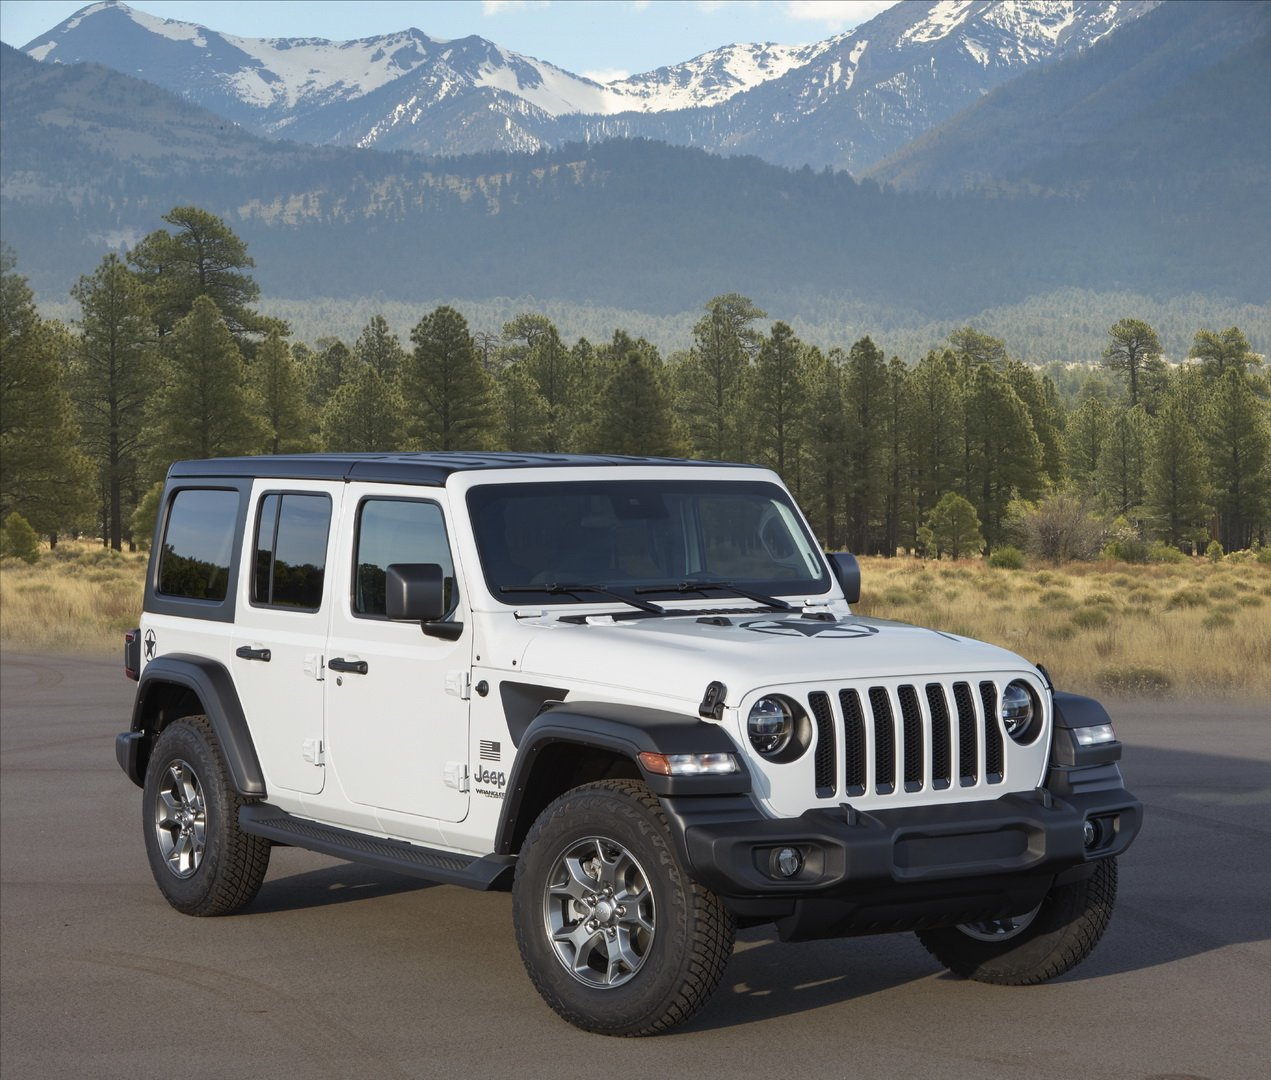 1_2020-jeep-wrangler-freedom-edition